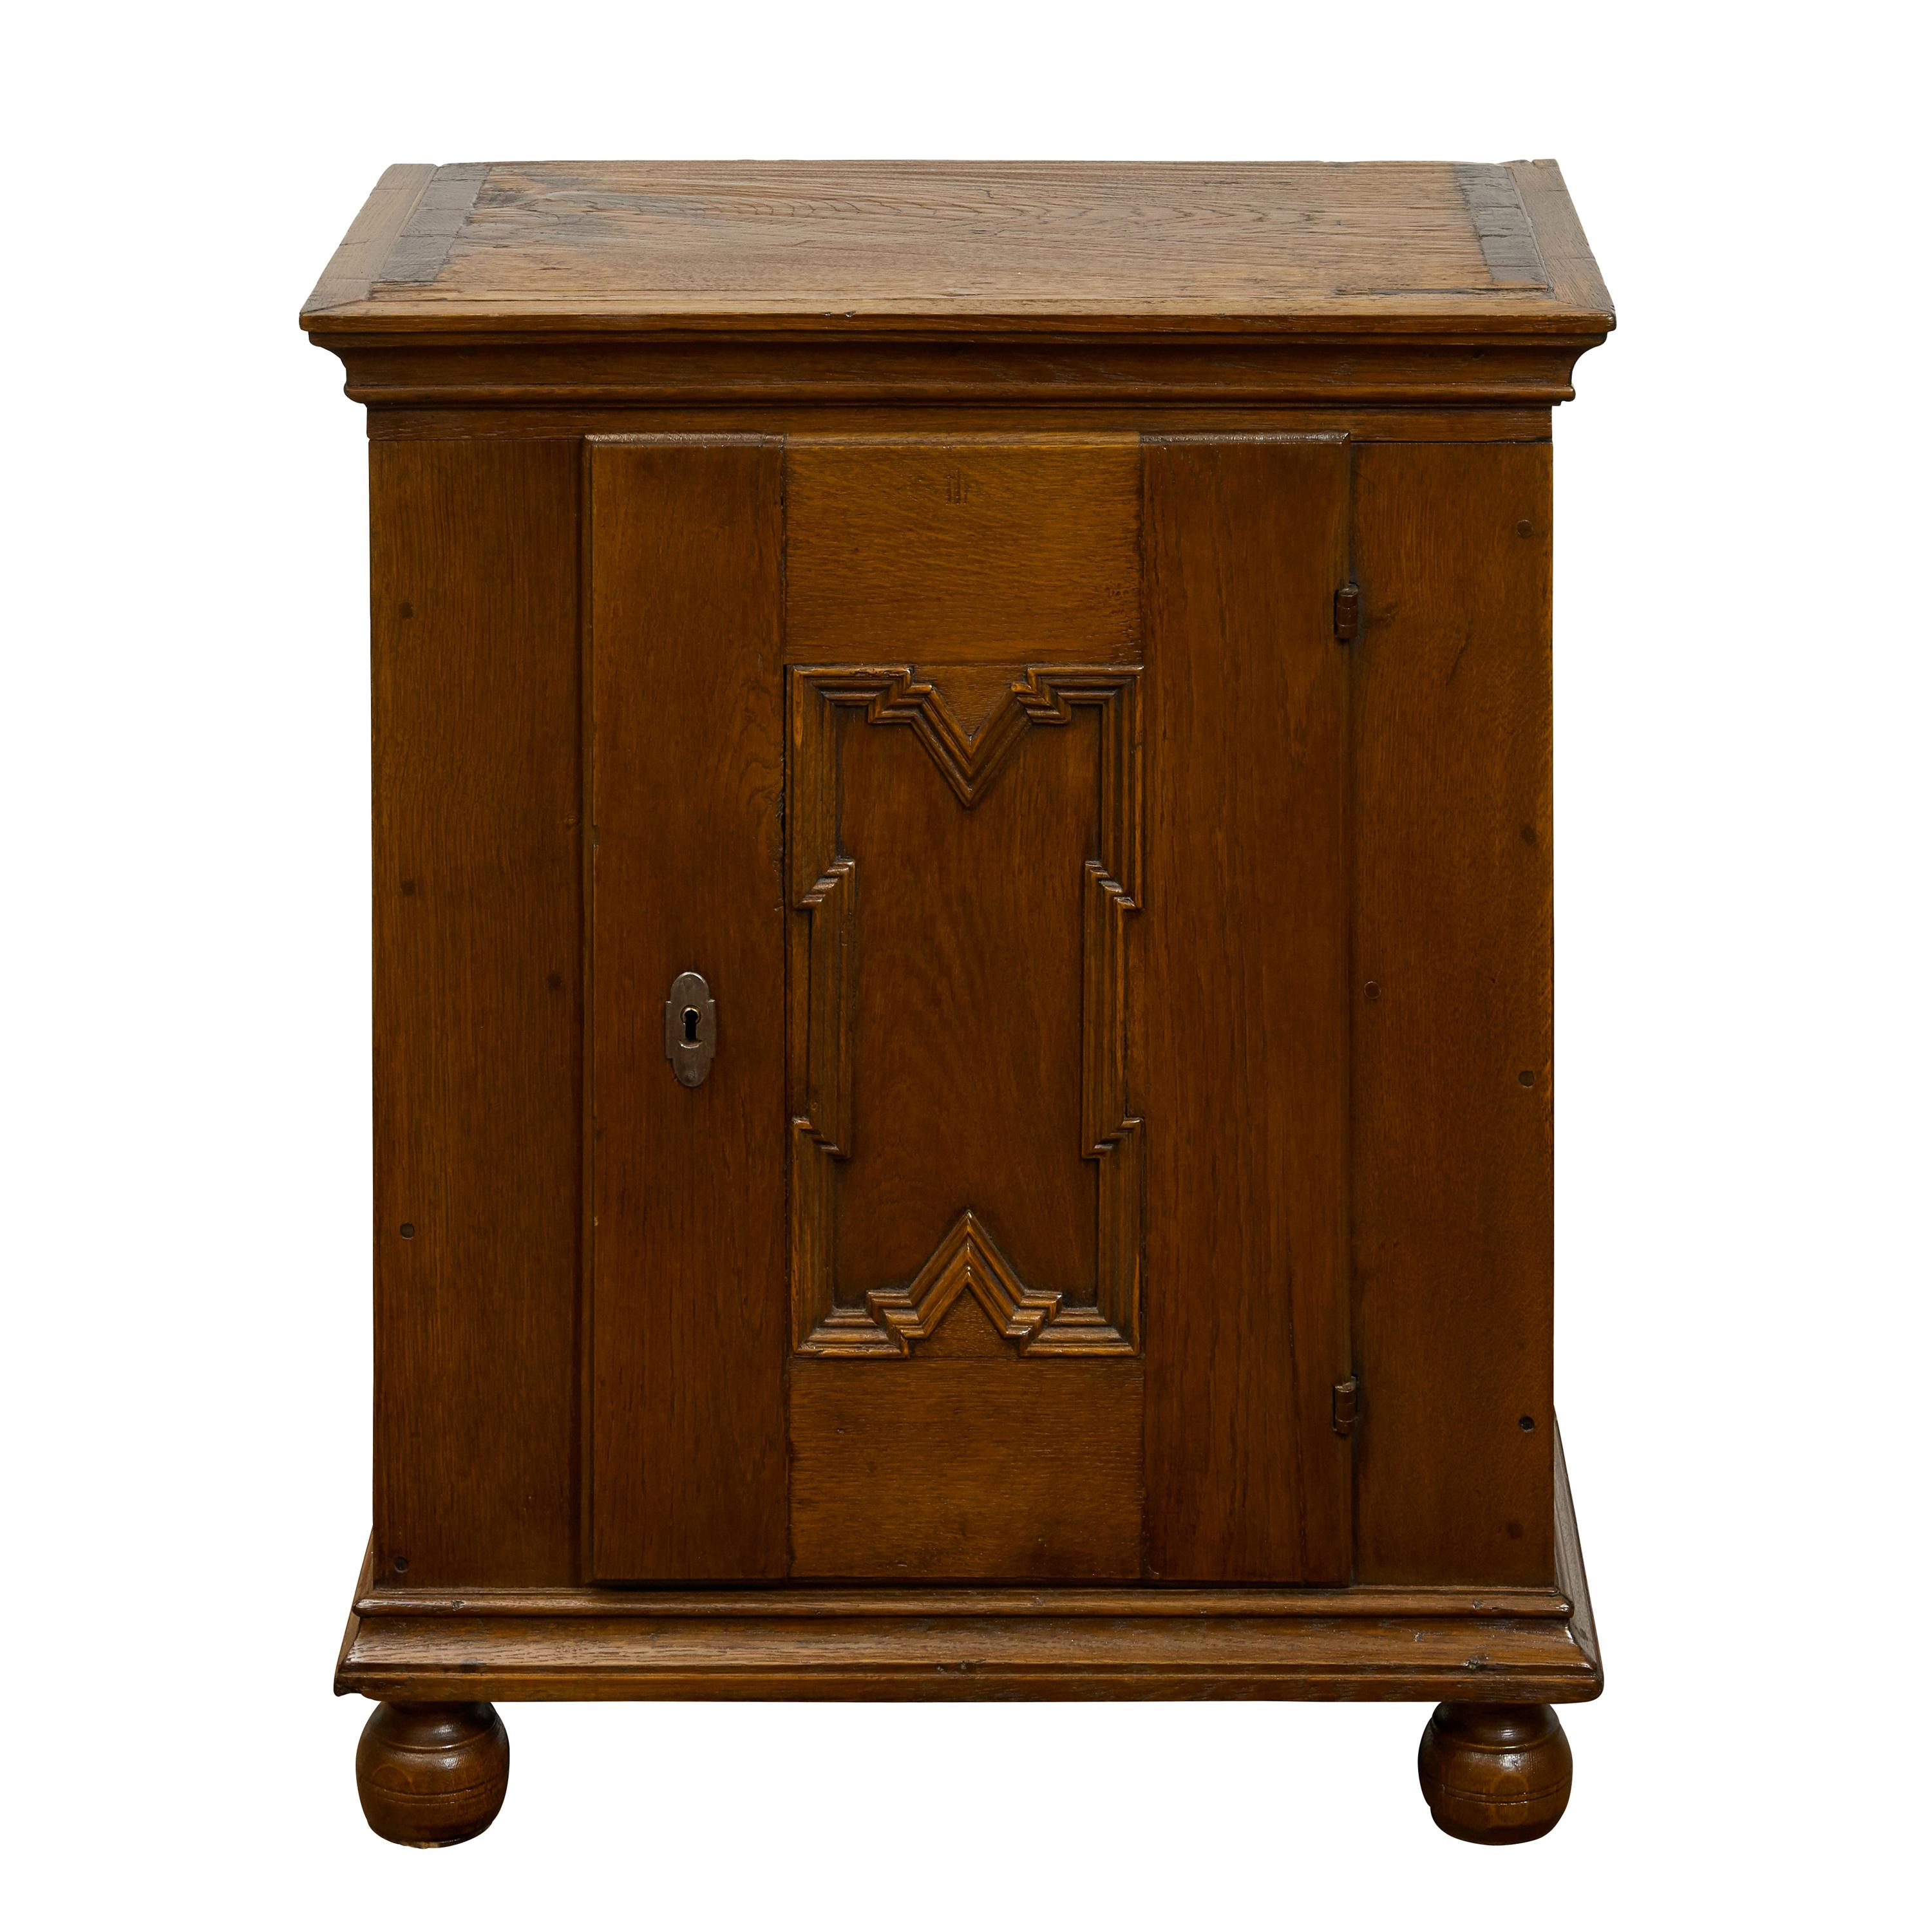 Italian 1820s Small Oak Cabinet with Single Door and Geometric Carved Motif